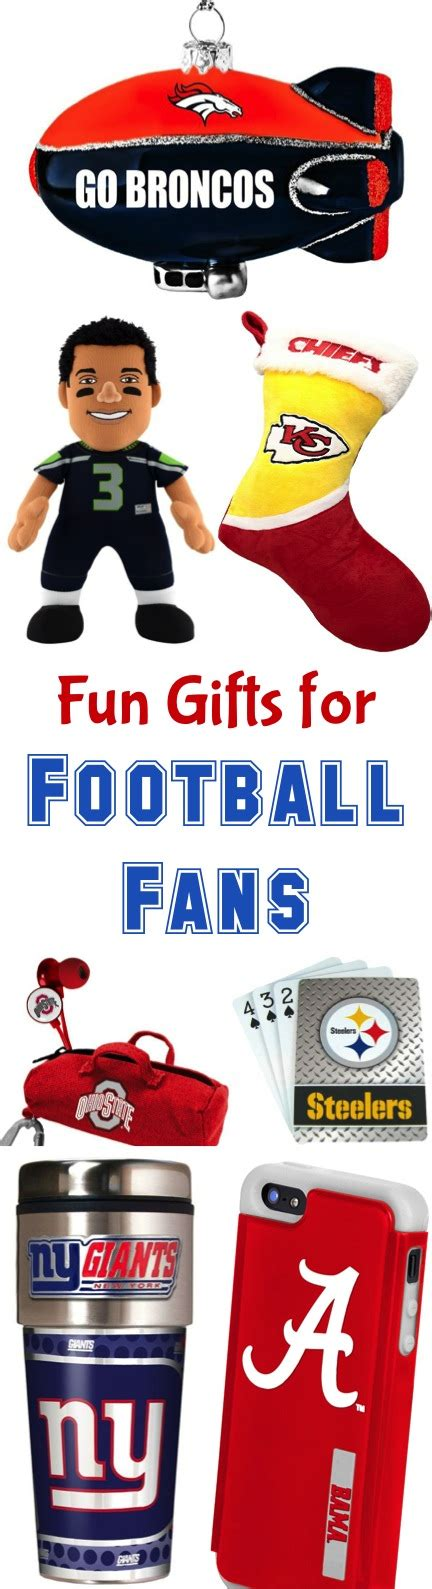 gifts for football fans 39 football stuffers the frugal